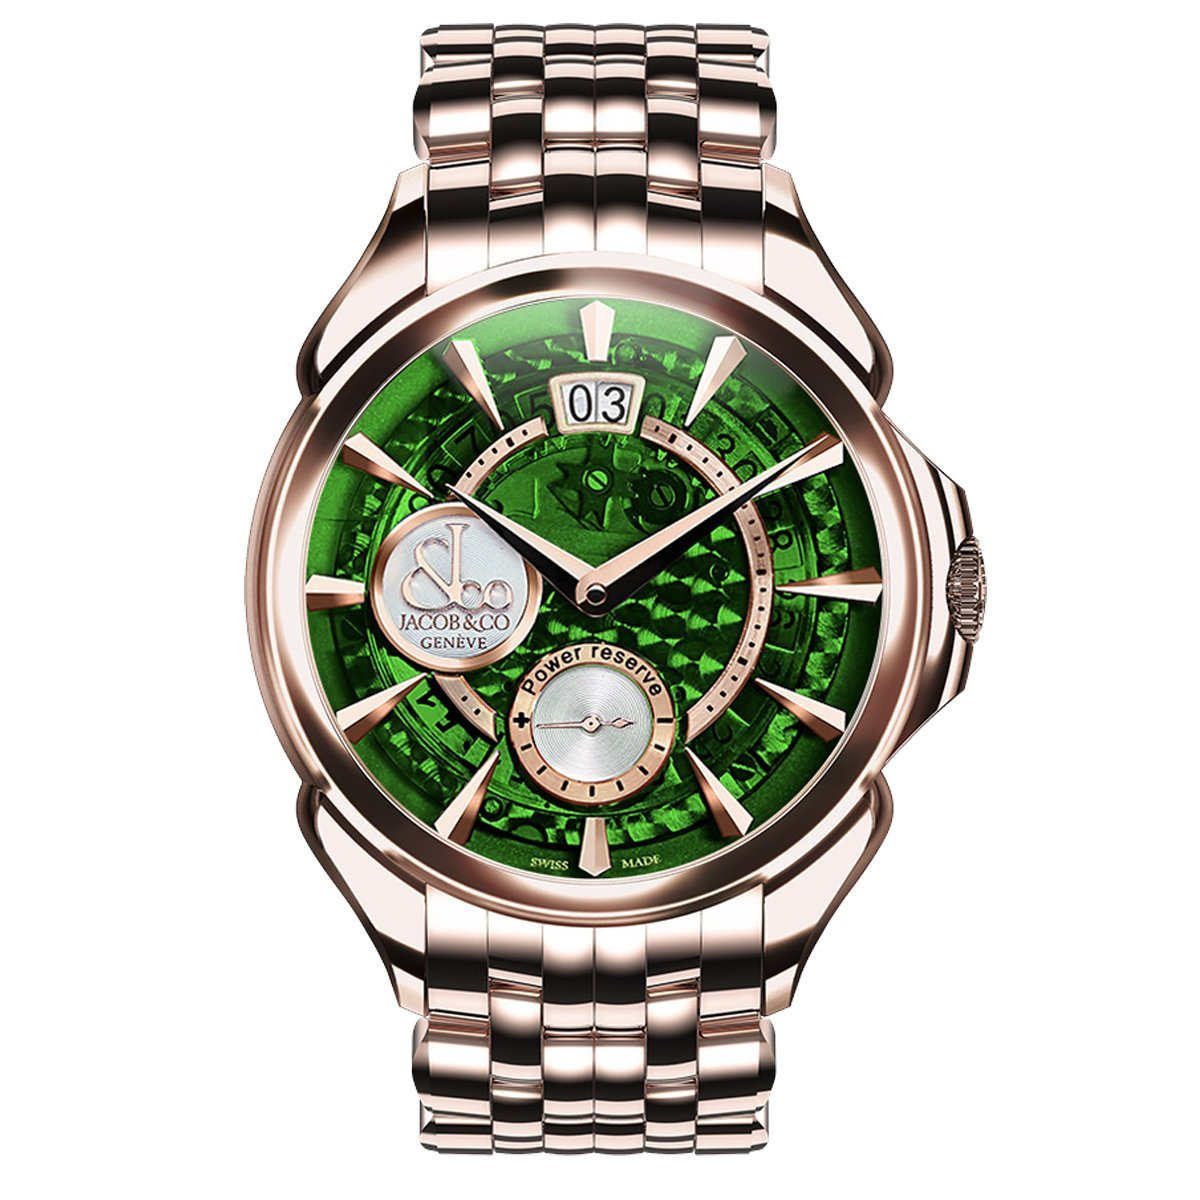 Jacob & Co. Palatial Classic Manual Big Date Green Rose Gold - Watches & Crystals